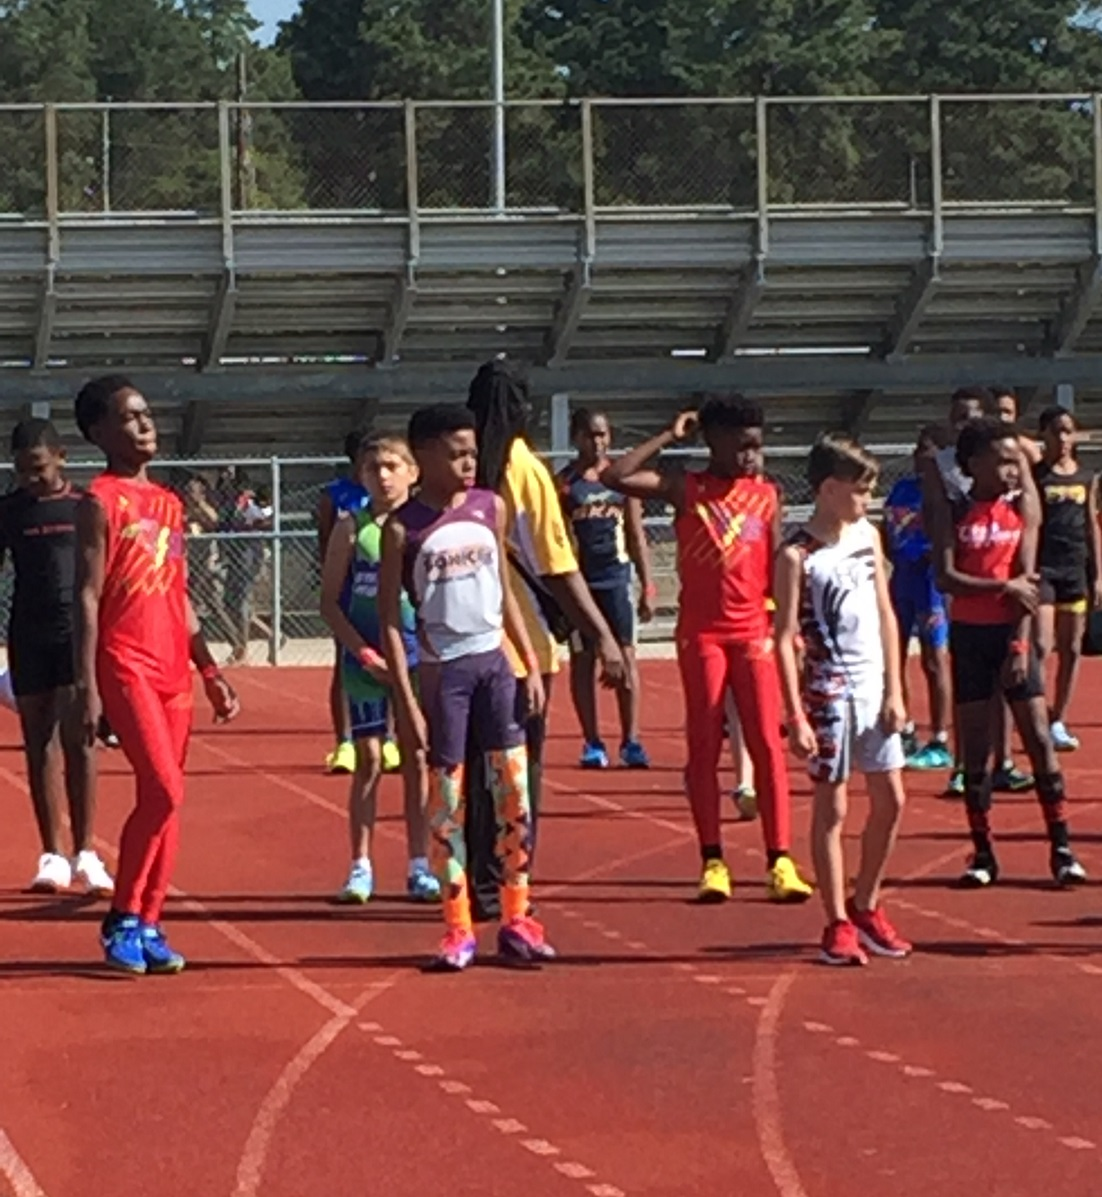 Jonathan preparing to run the 100